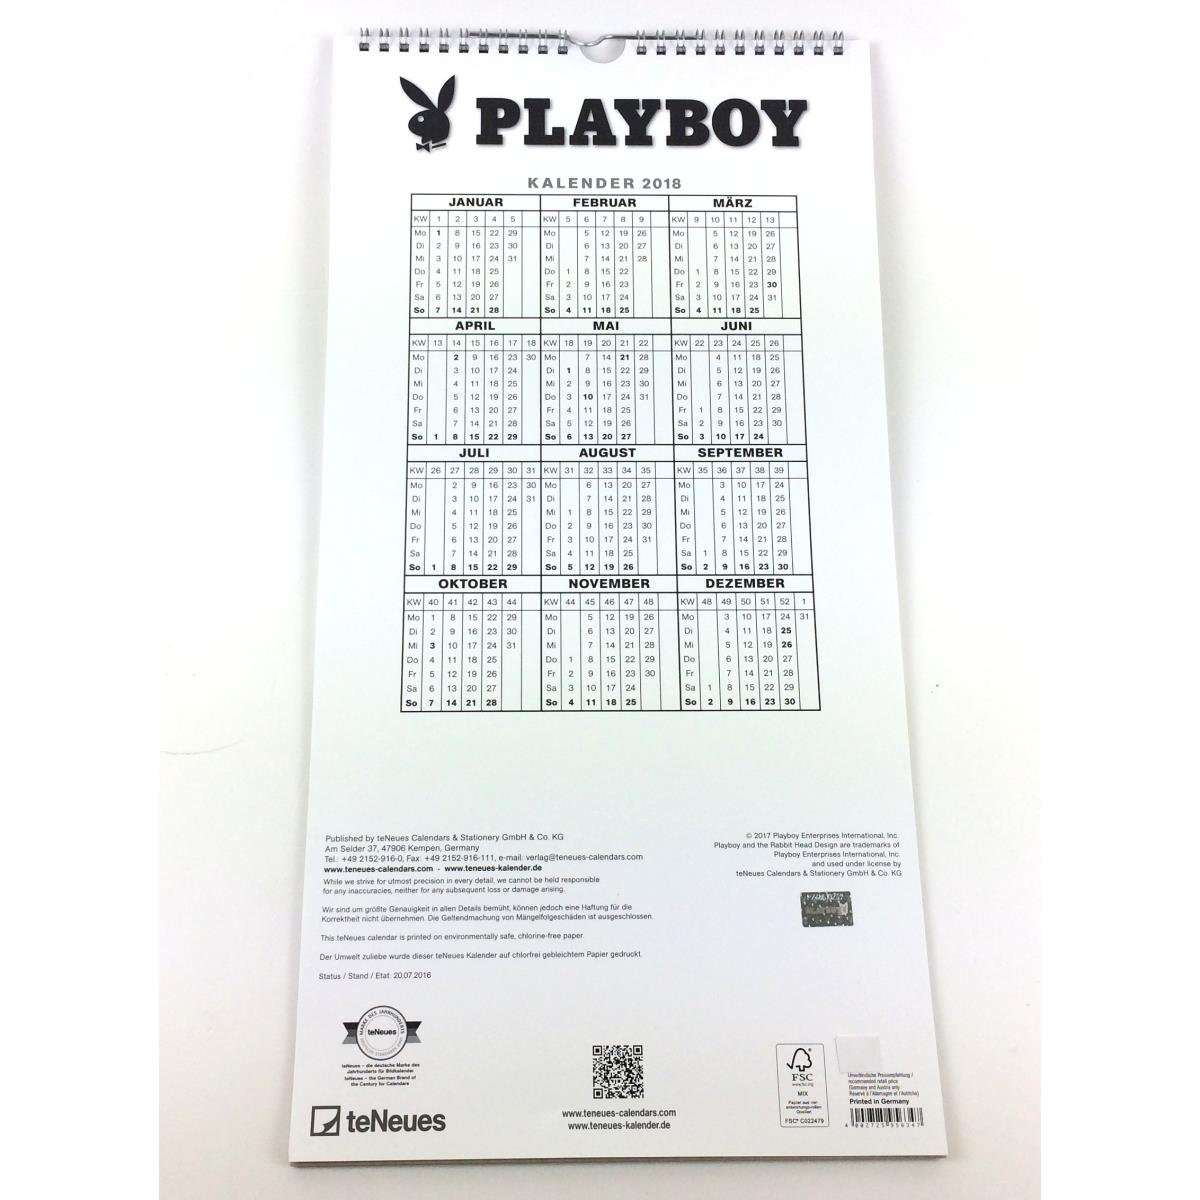 kalender playboy 2018 playboykalender erotikkalender. Black Bedroom Furniture Sets. Home Design Ideas